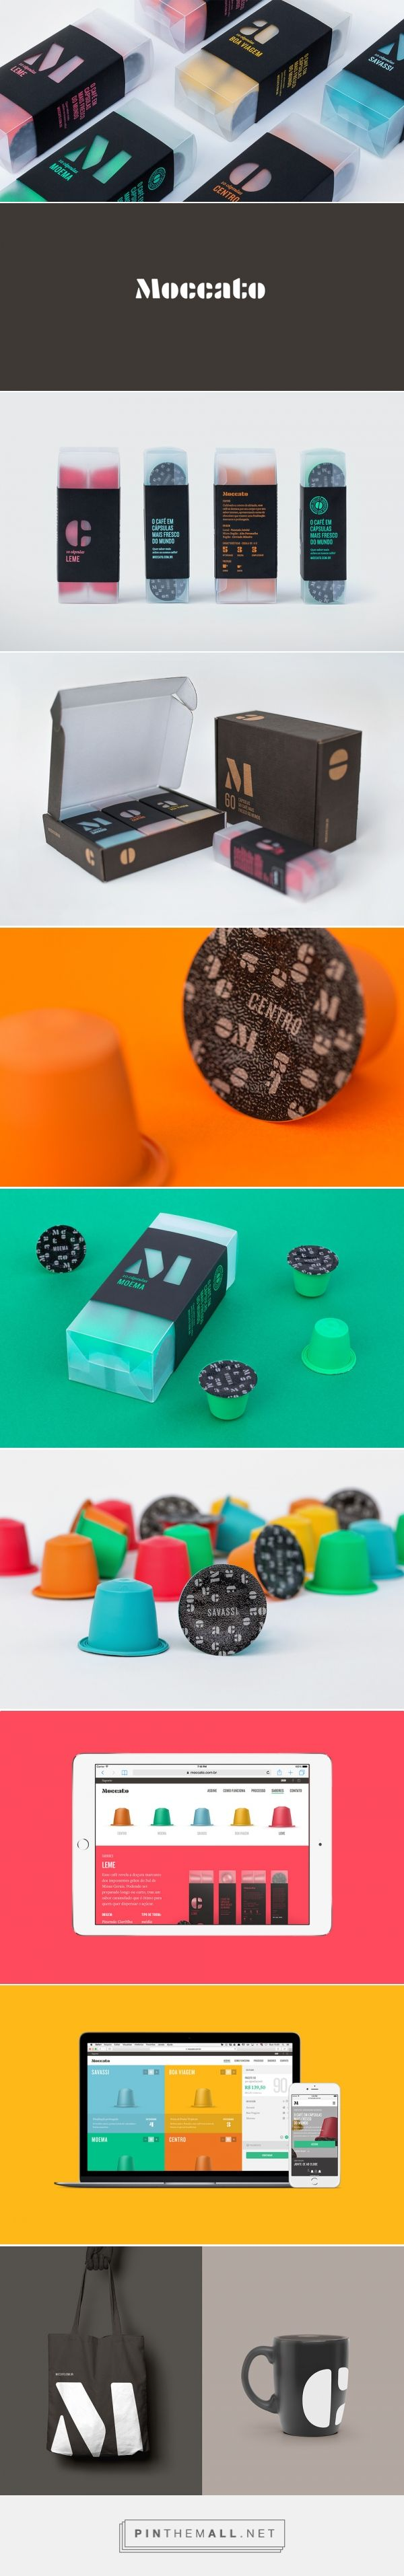 MOCCATO — For all you coffee lovers out there, get a load of this. MOCCATO's bright and colorful packaging delivers flavorful morning pick-me-ups to your door. From the best local producers, tiny coffee pods are stacked in a frosty box, dressed in a diecut black sleeve.